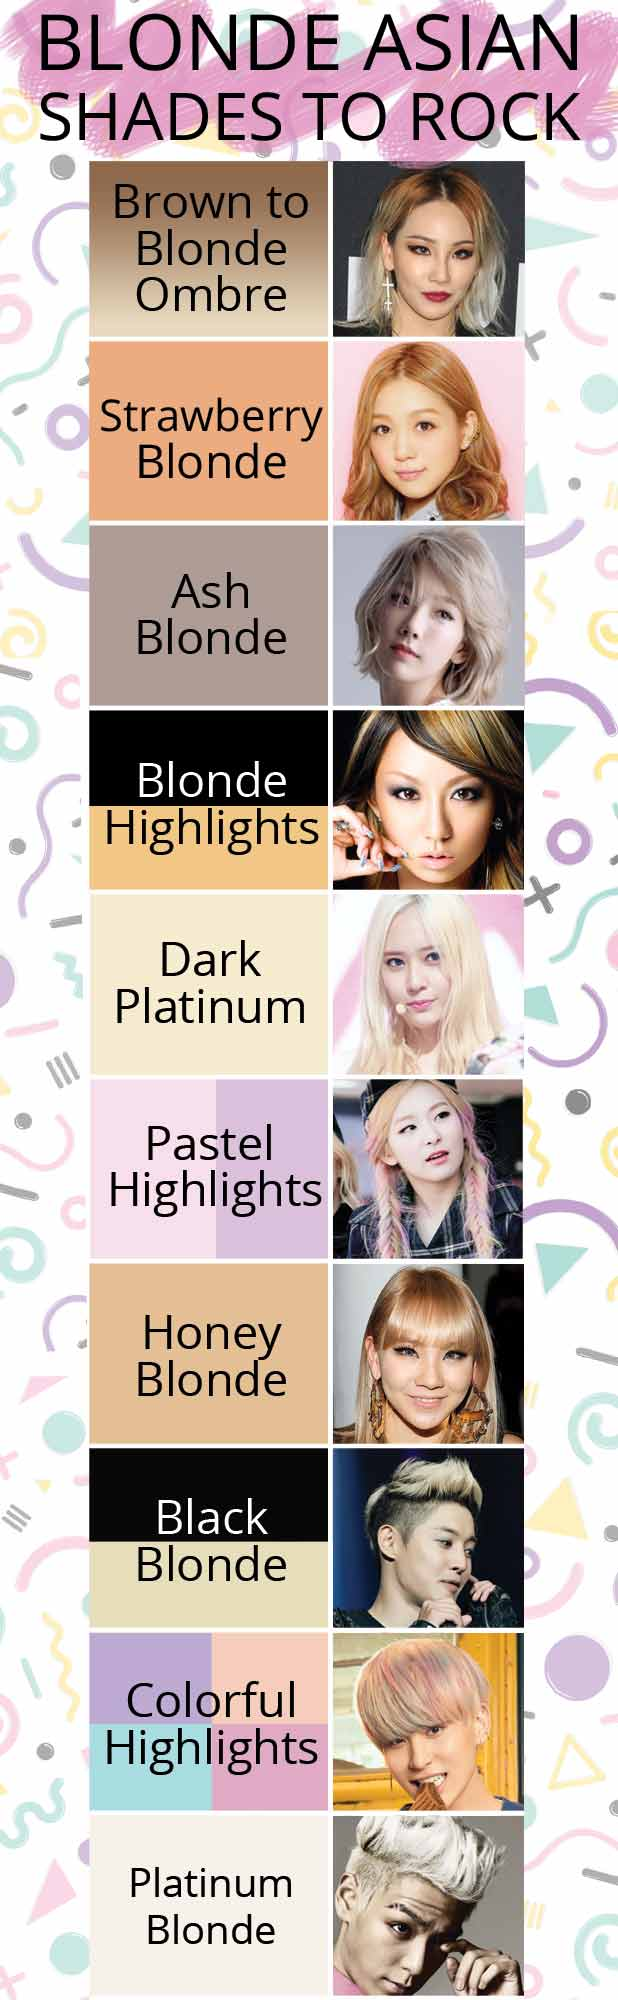 blonde-asian-hair-colors-styles-kpop-jpop-kdrama-korean-celebrities-blond